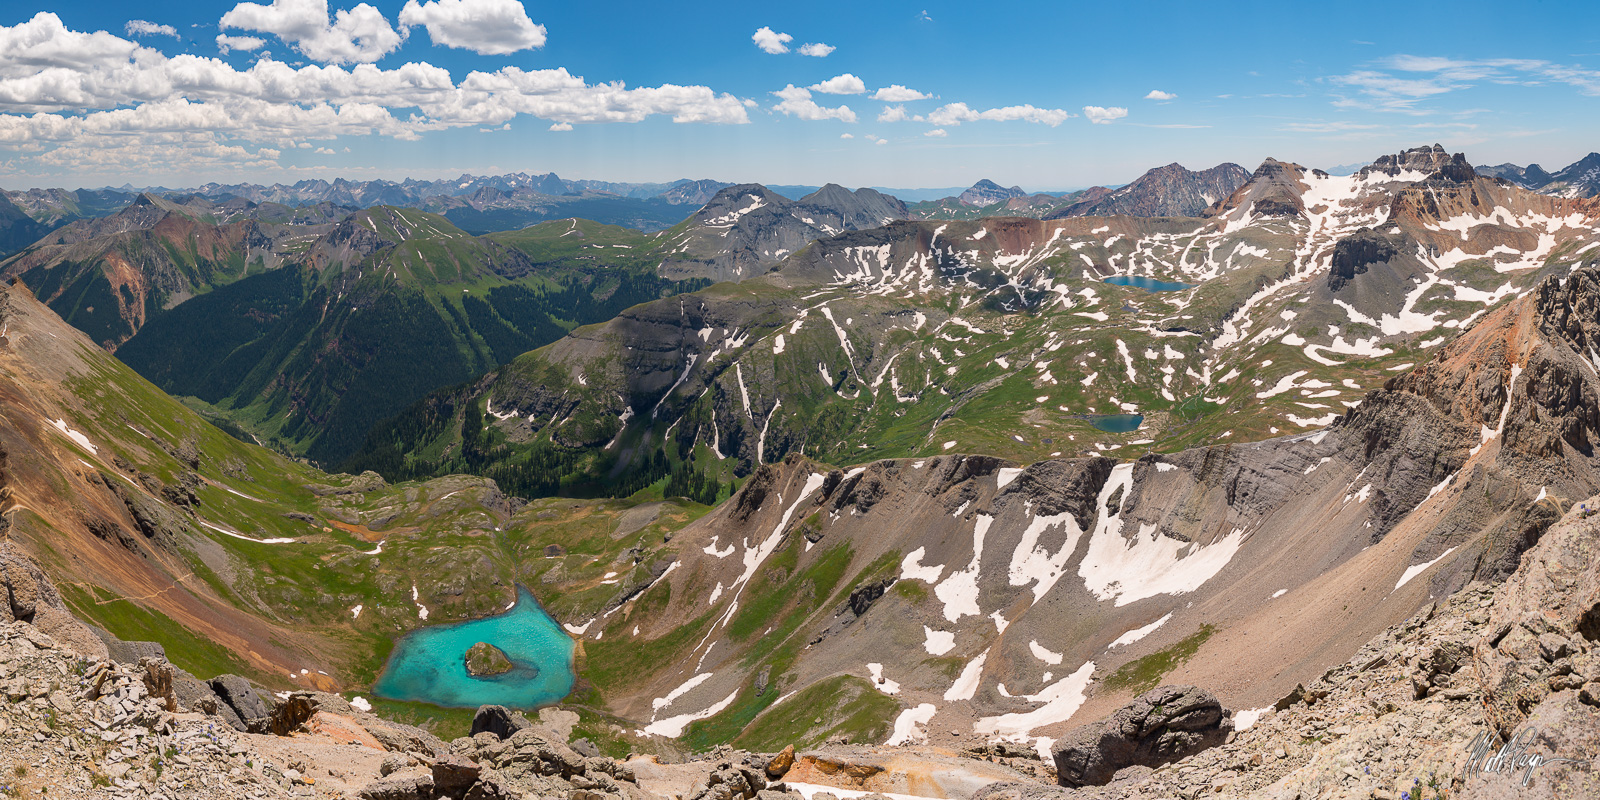 Colorado, mountains, 13ers, 14ers, Island Lake, U.S. Grant Peak, Ulysses S. Grant Peak, Vermillion Peak, Fuller Peak, Golden Horn, Pilot Knob, San Juan Mountains, Silverton, turquoise water, photo